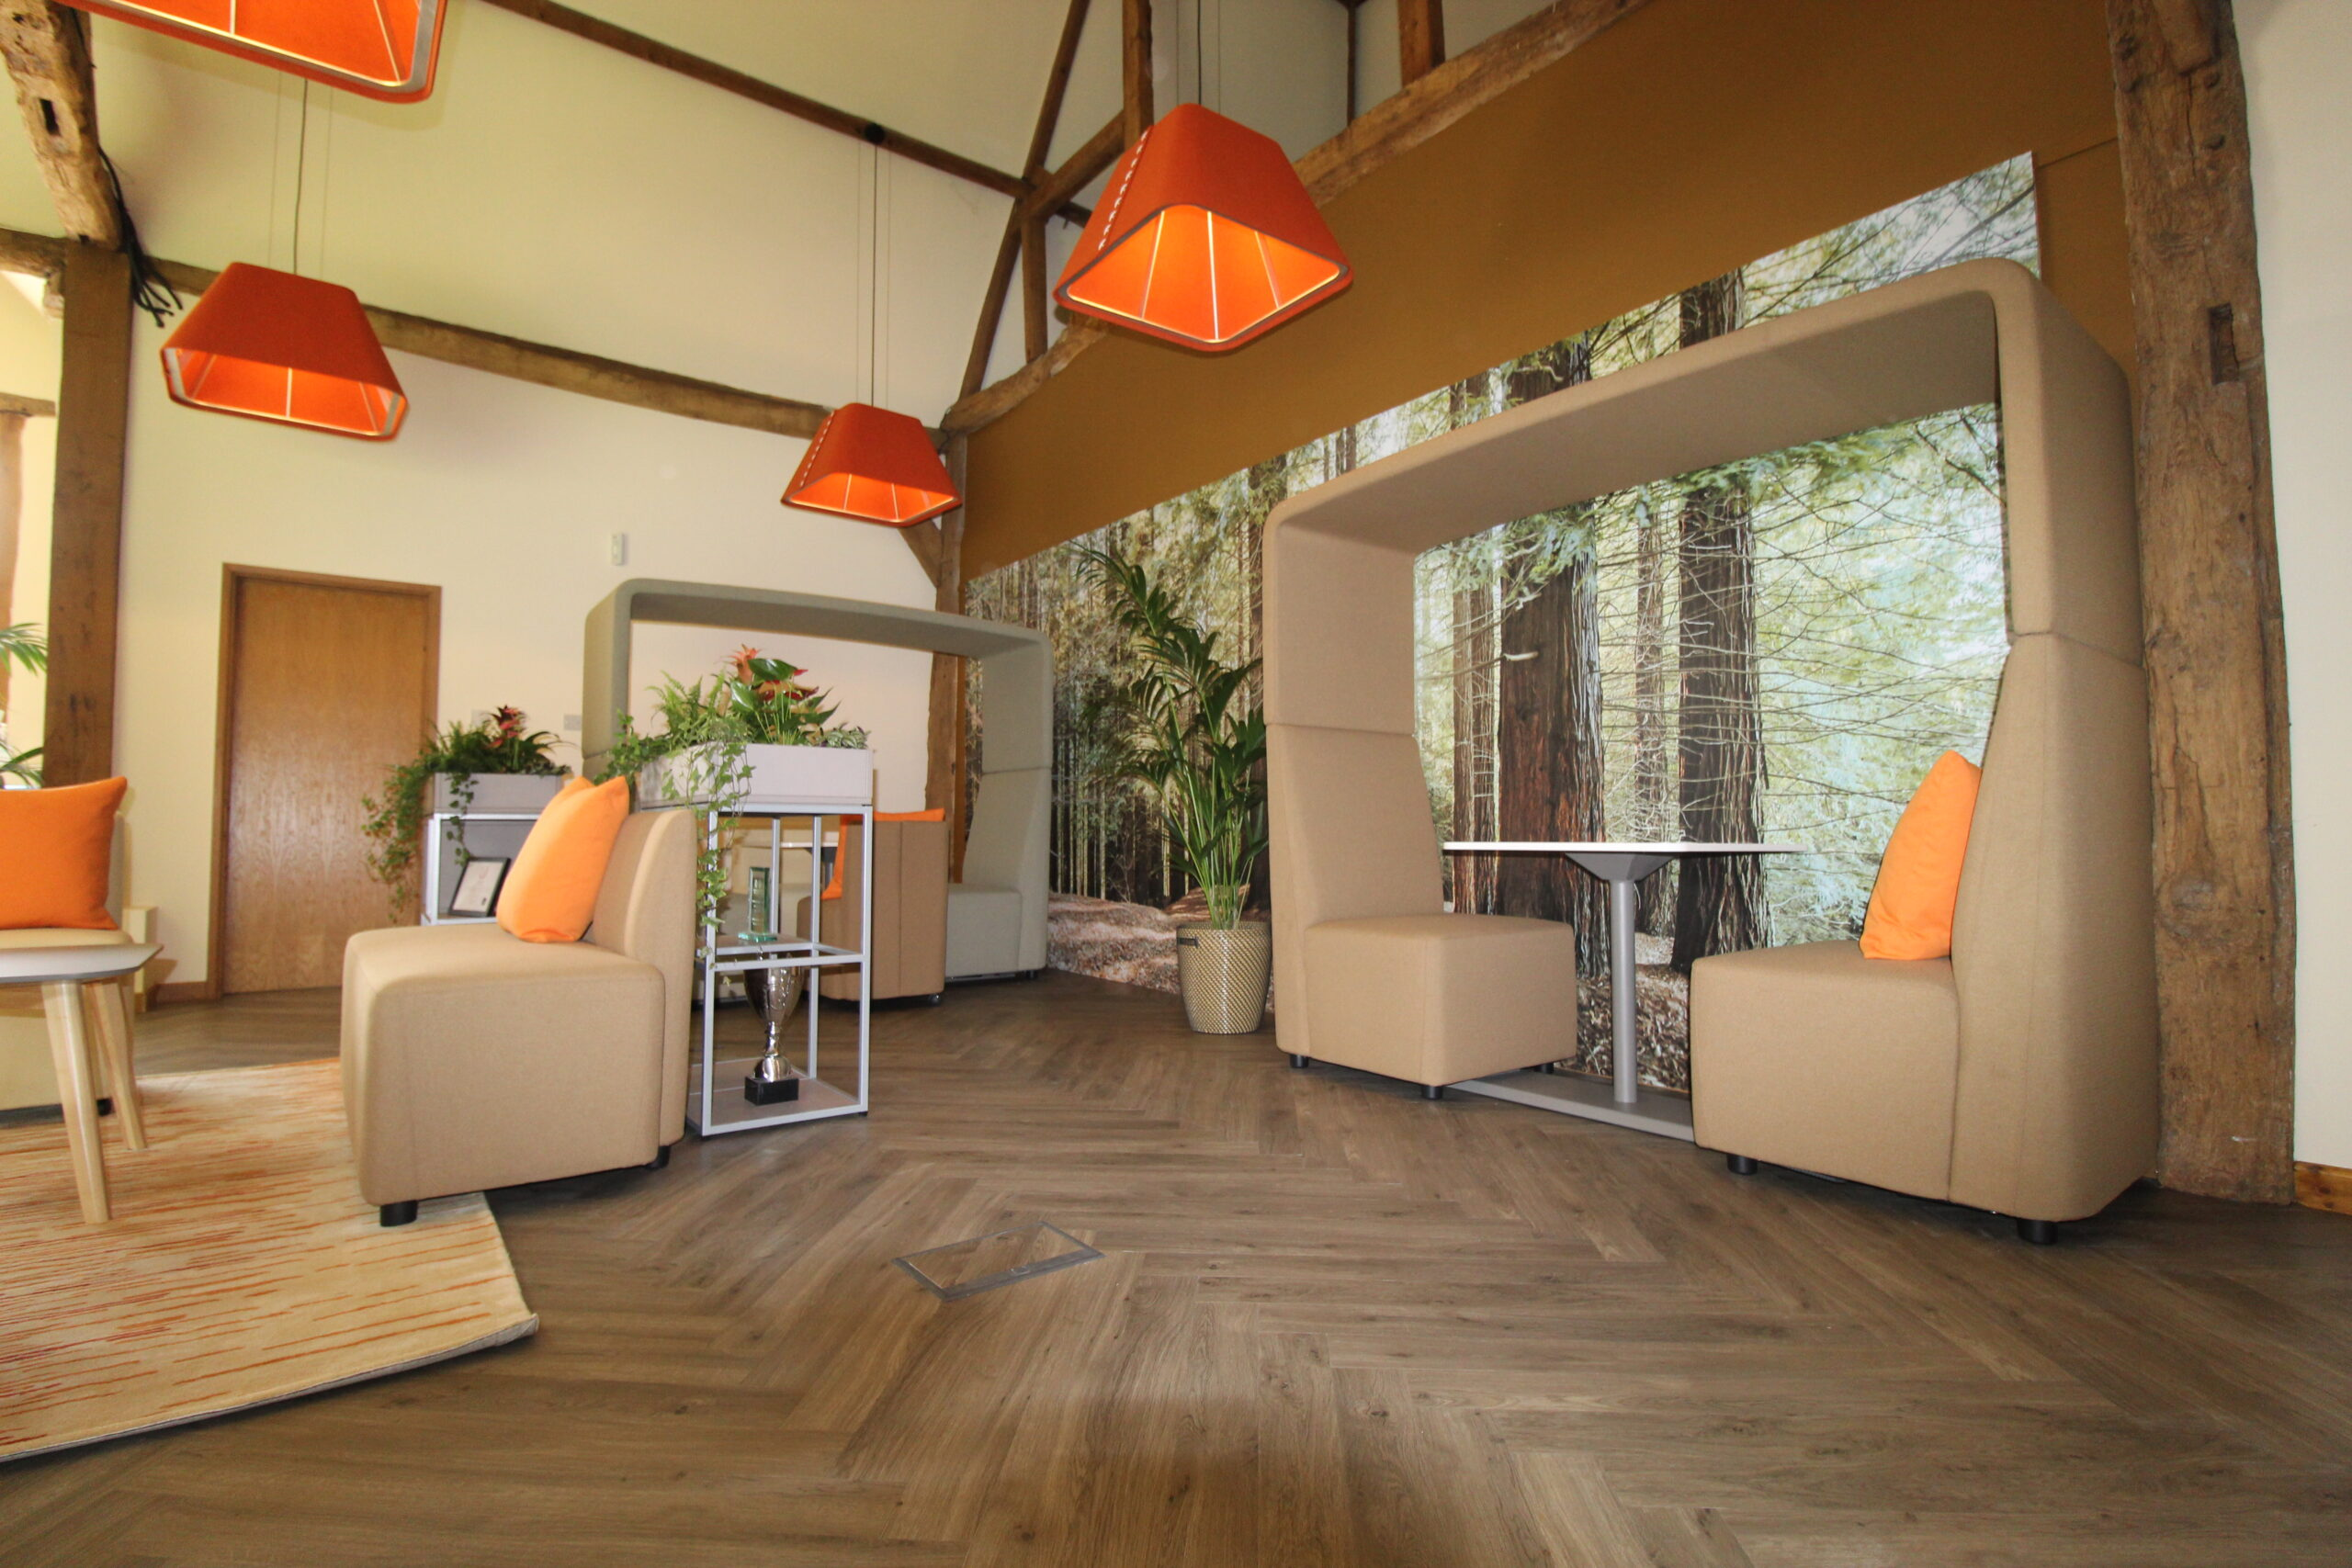 Reception area with forest wall graphic and acoustic booth